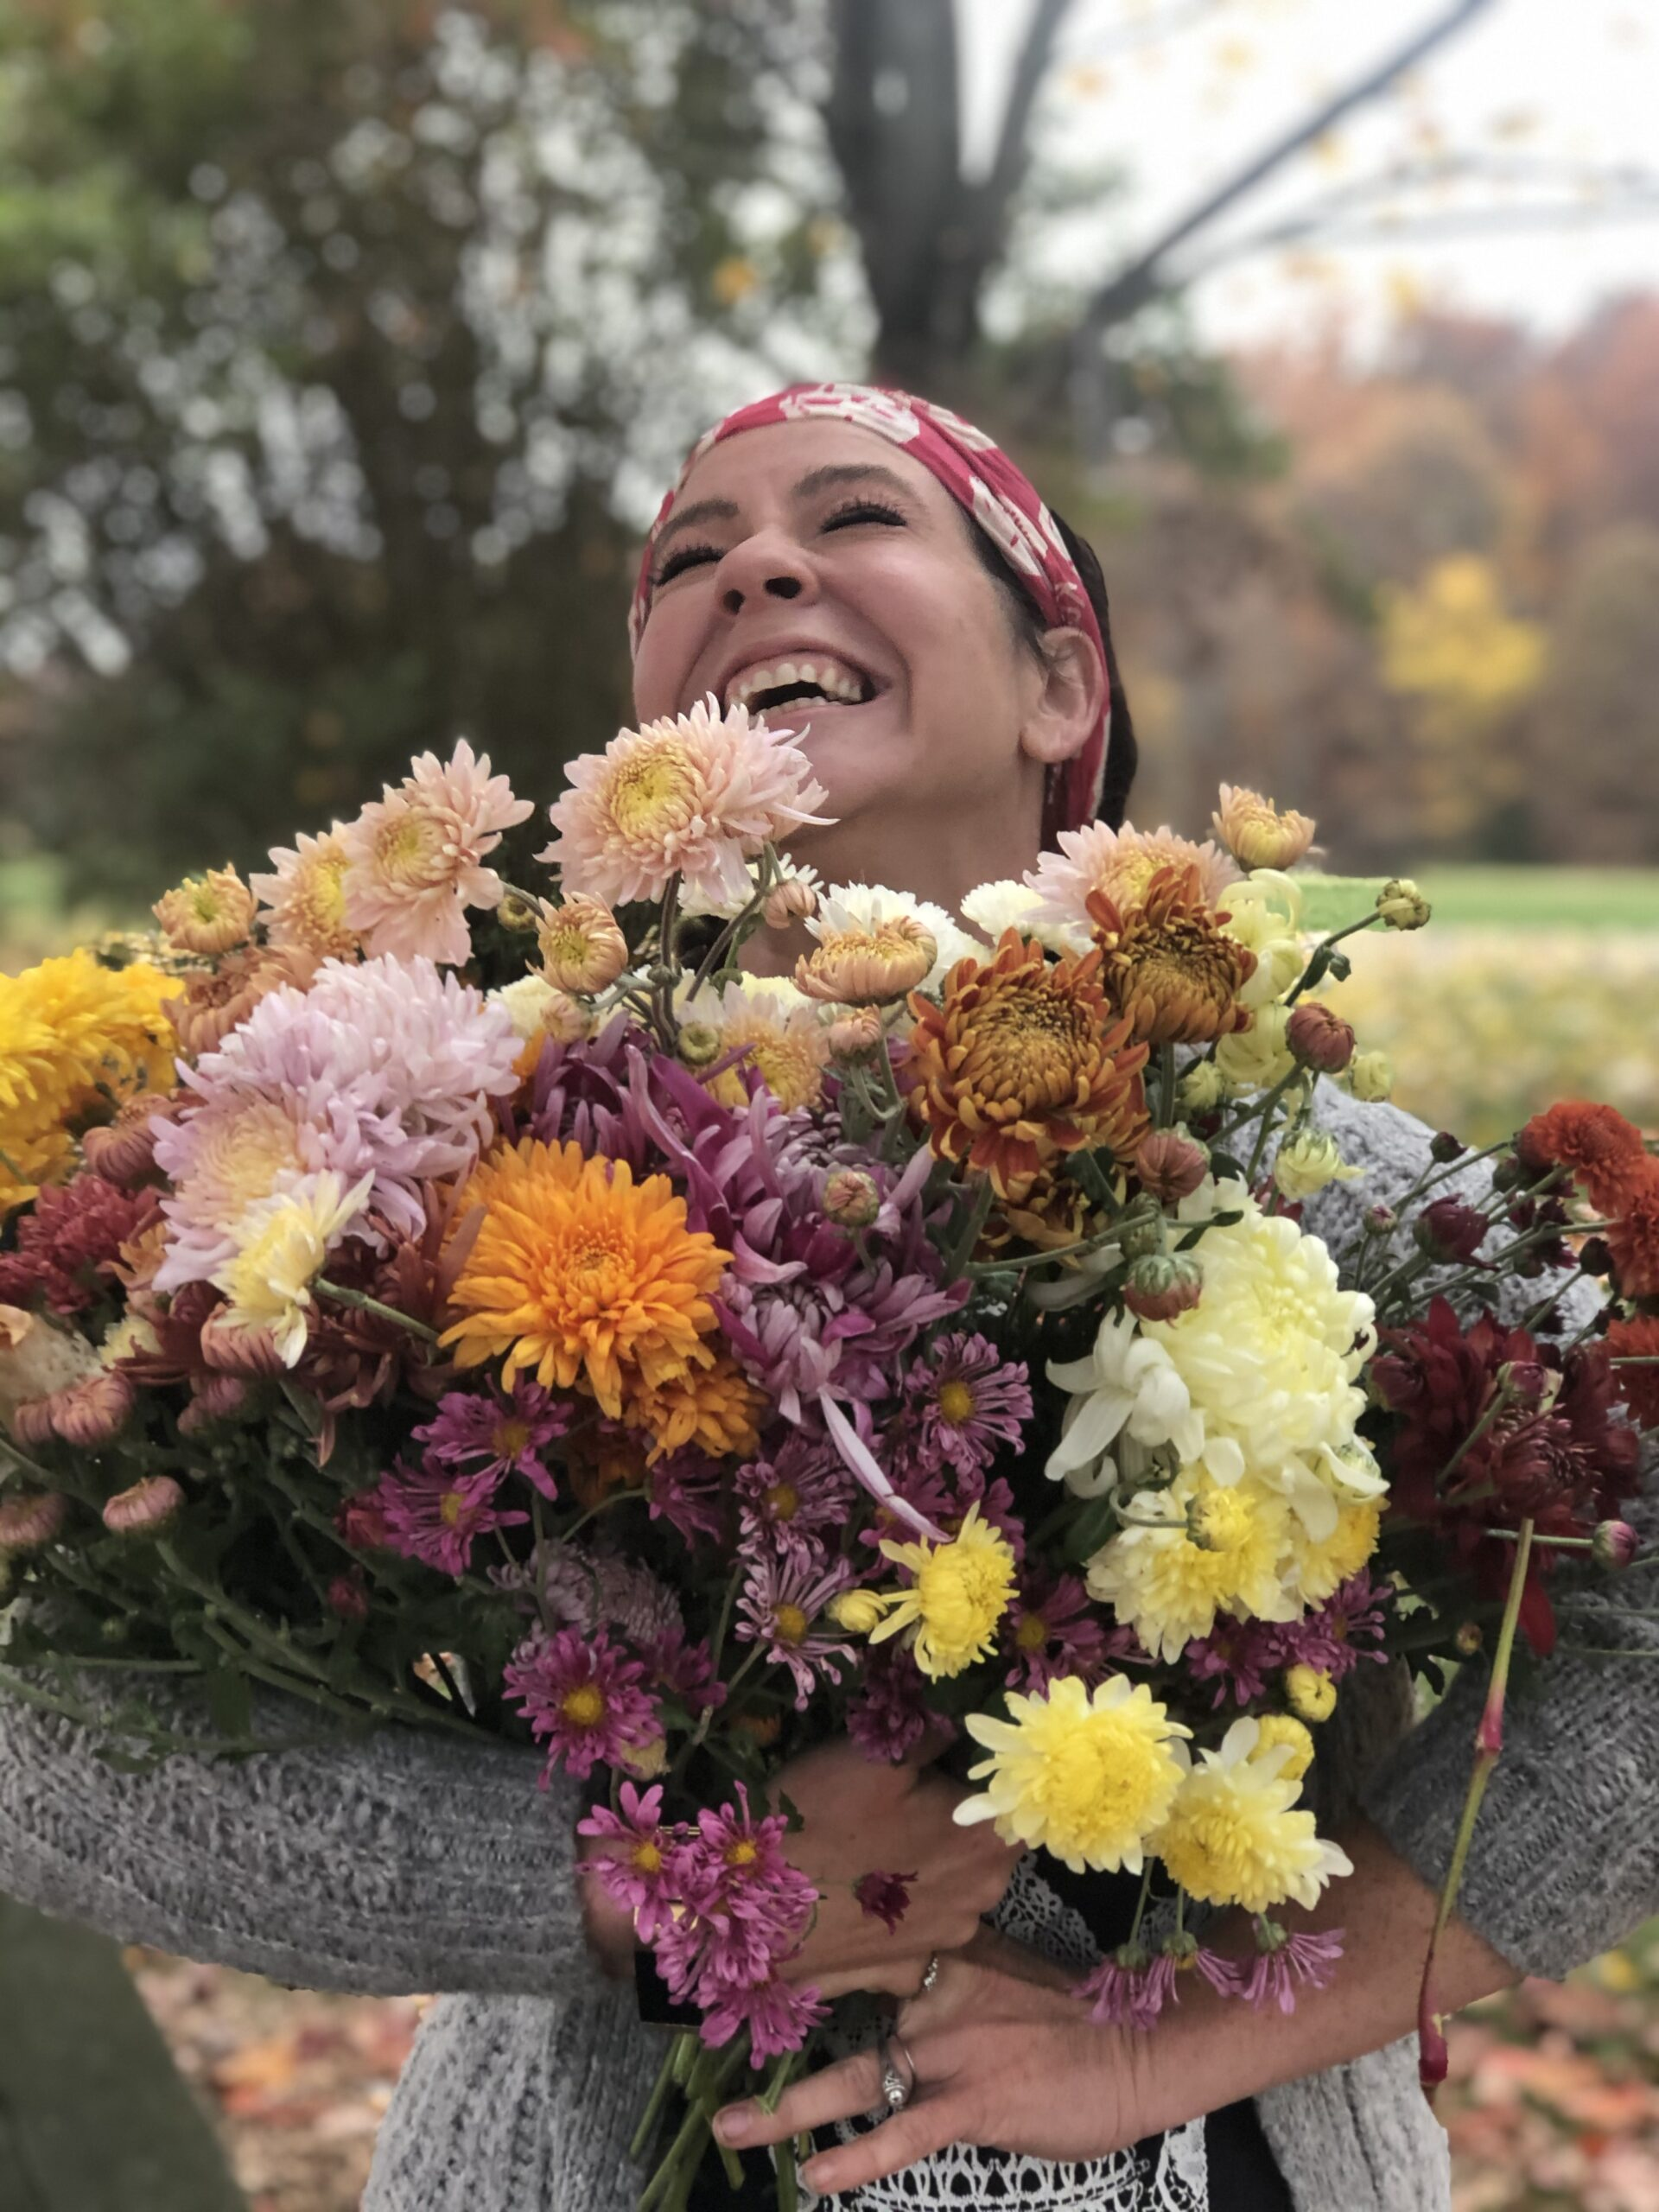 Woman holding bunches of colorful chrysanthemums.